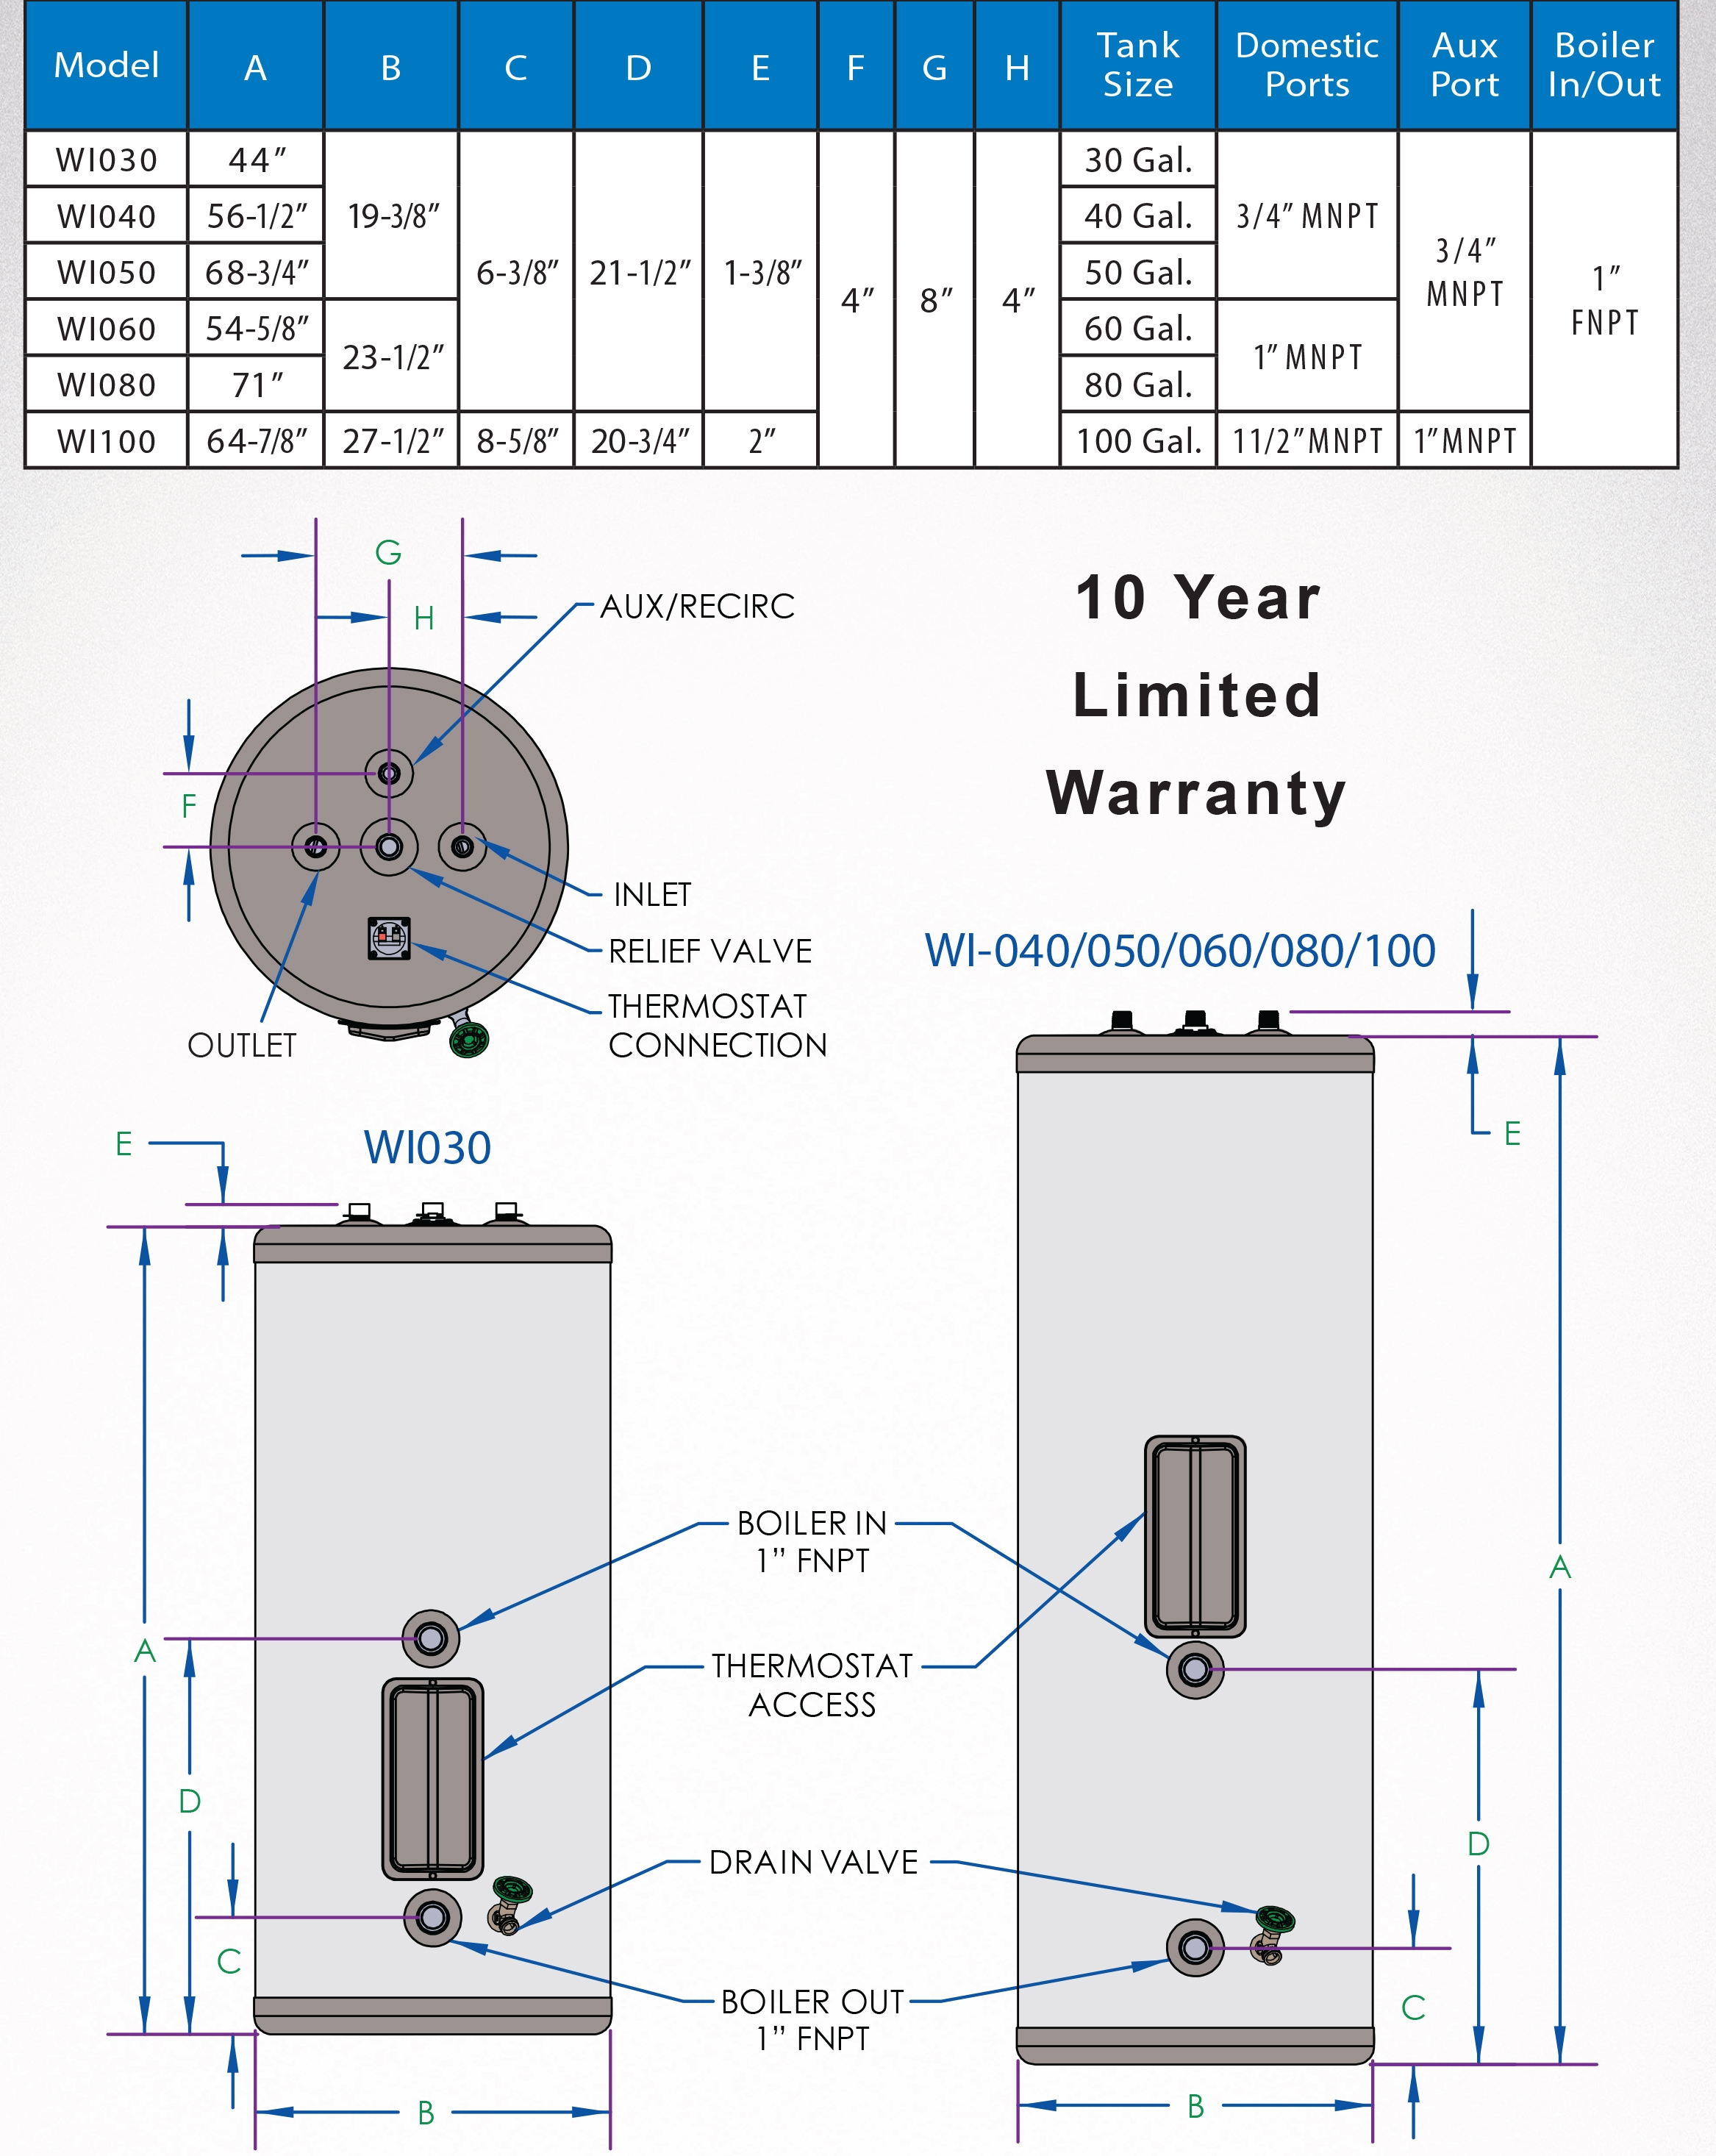 Westingh wi060 stainless steel indirect water heater tank heat exchanger ccuart Choice Image